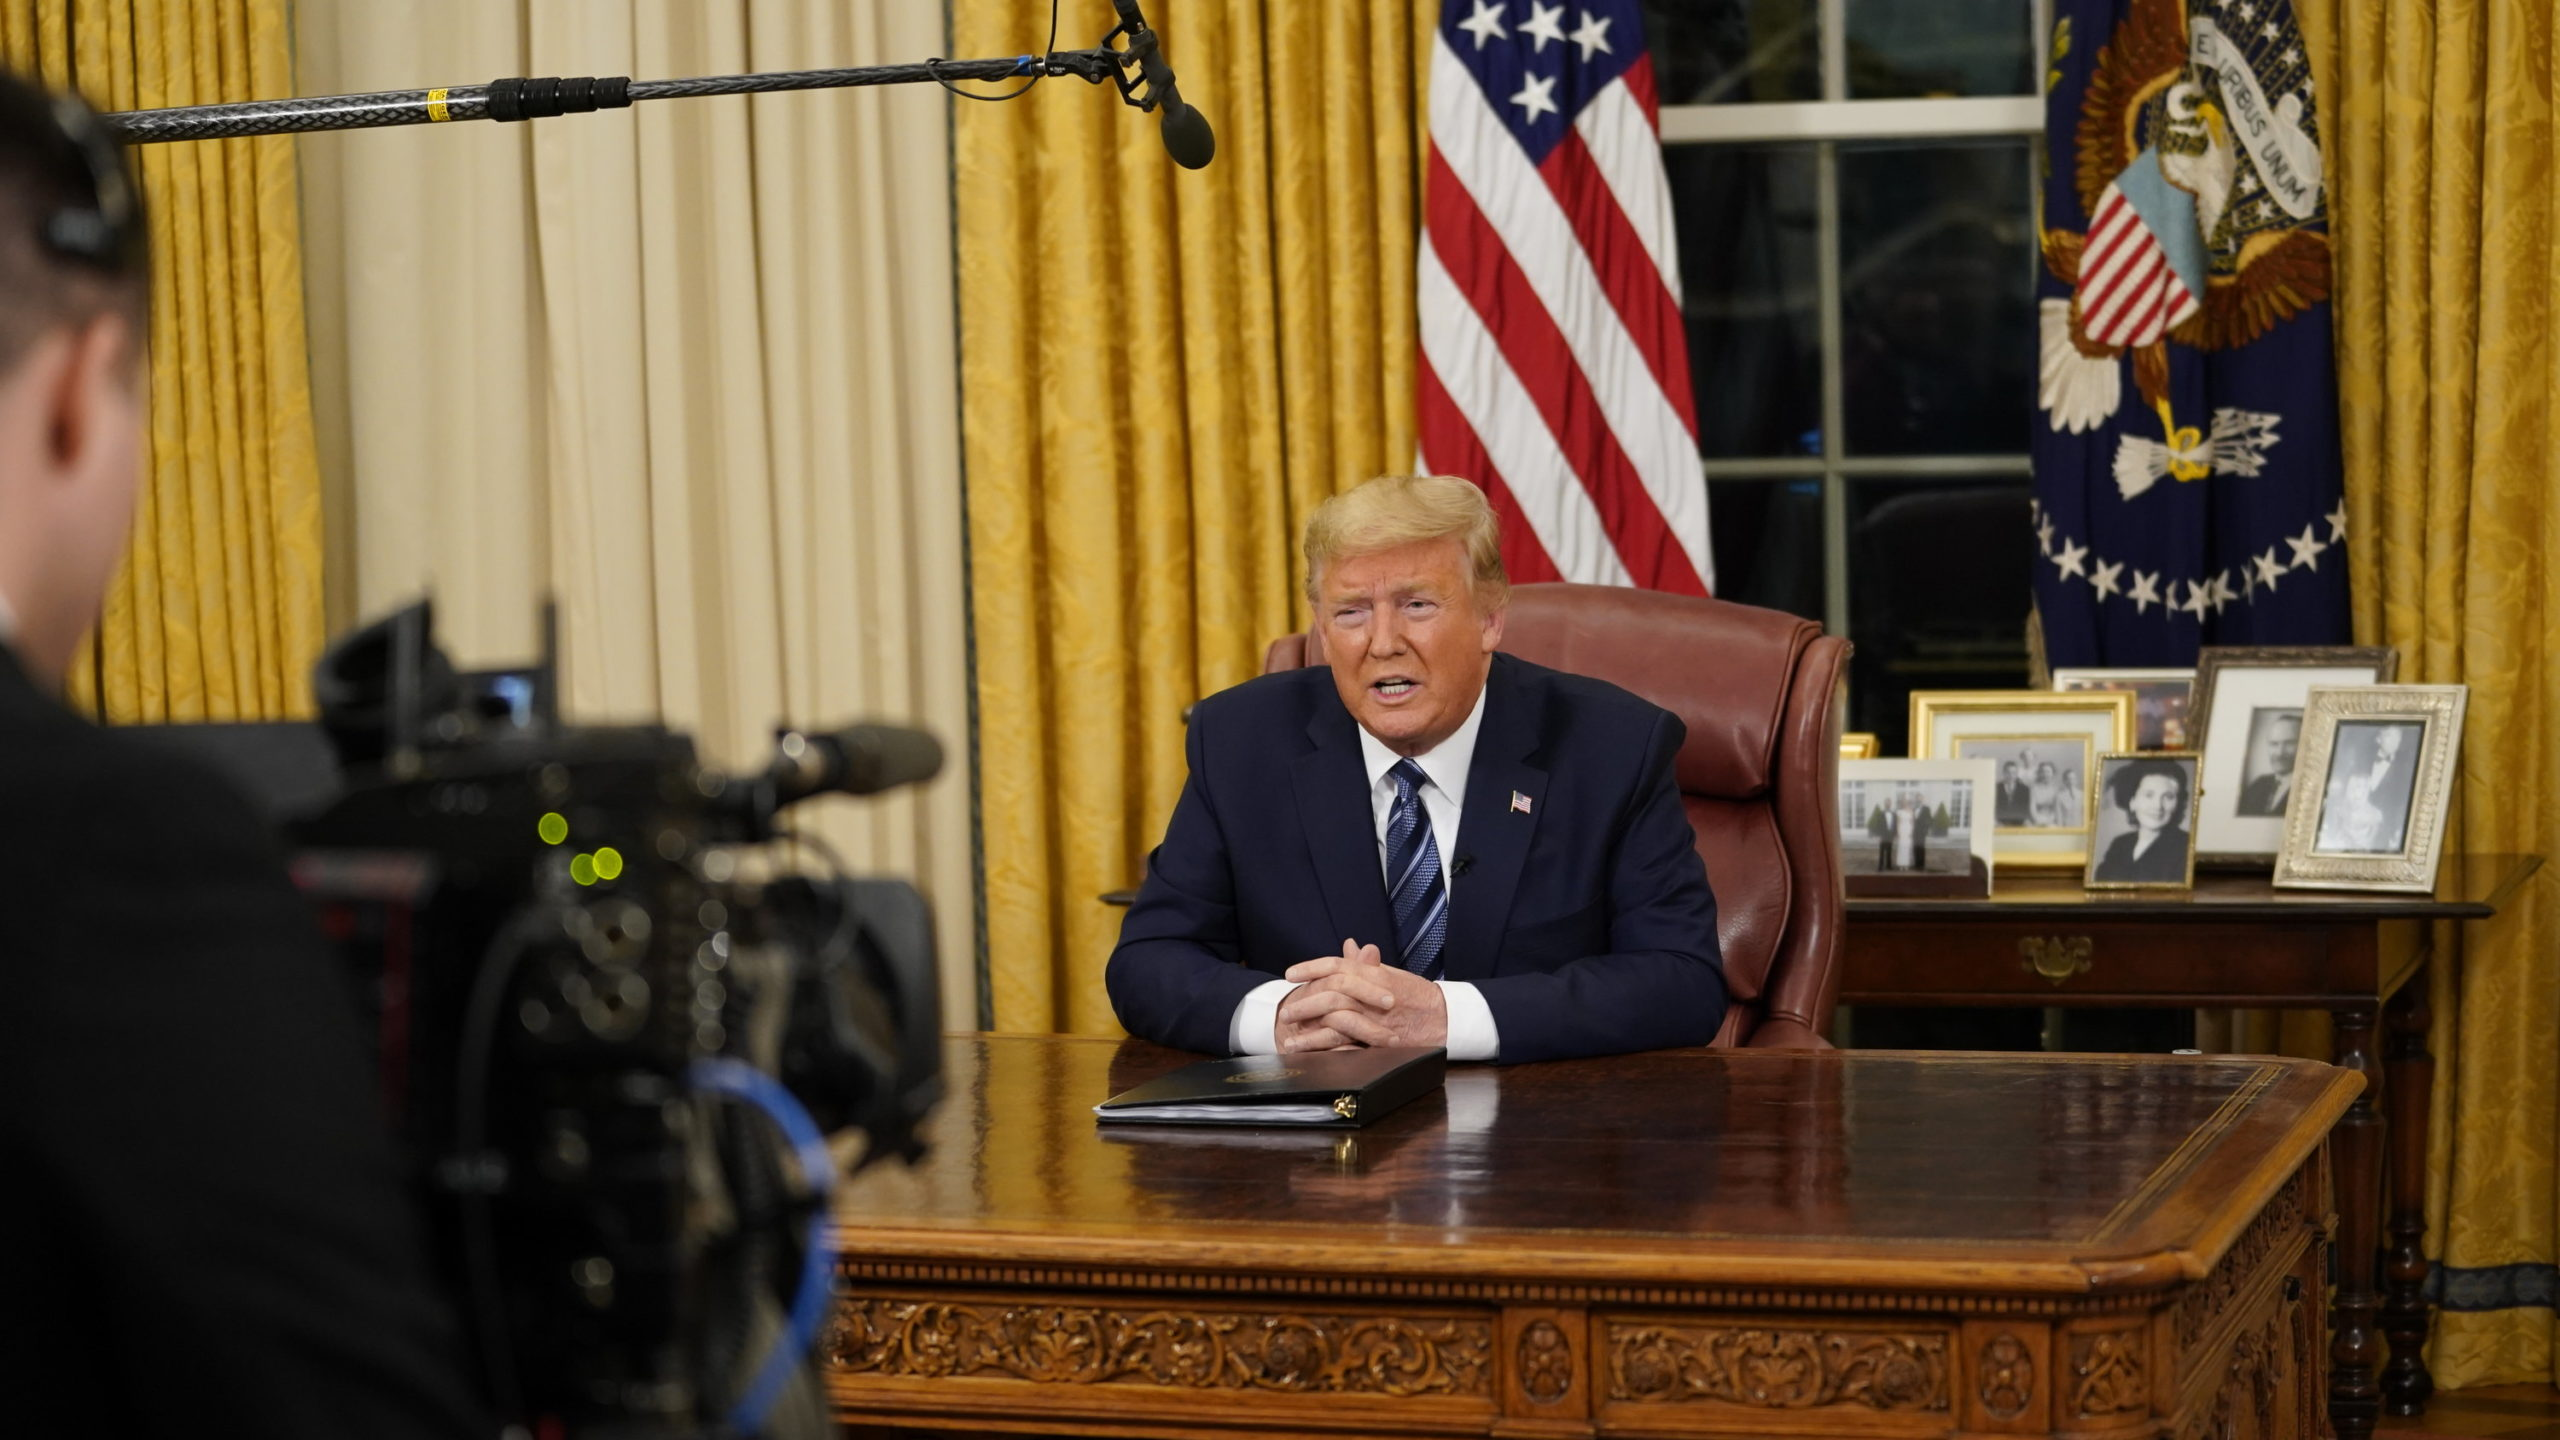 In Rare Oval Office Speech, Trump Voices New Concerns and Old Themes